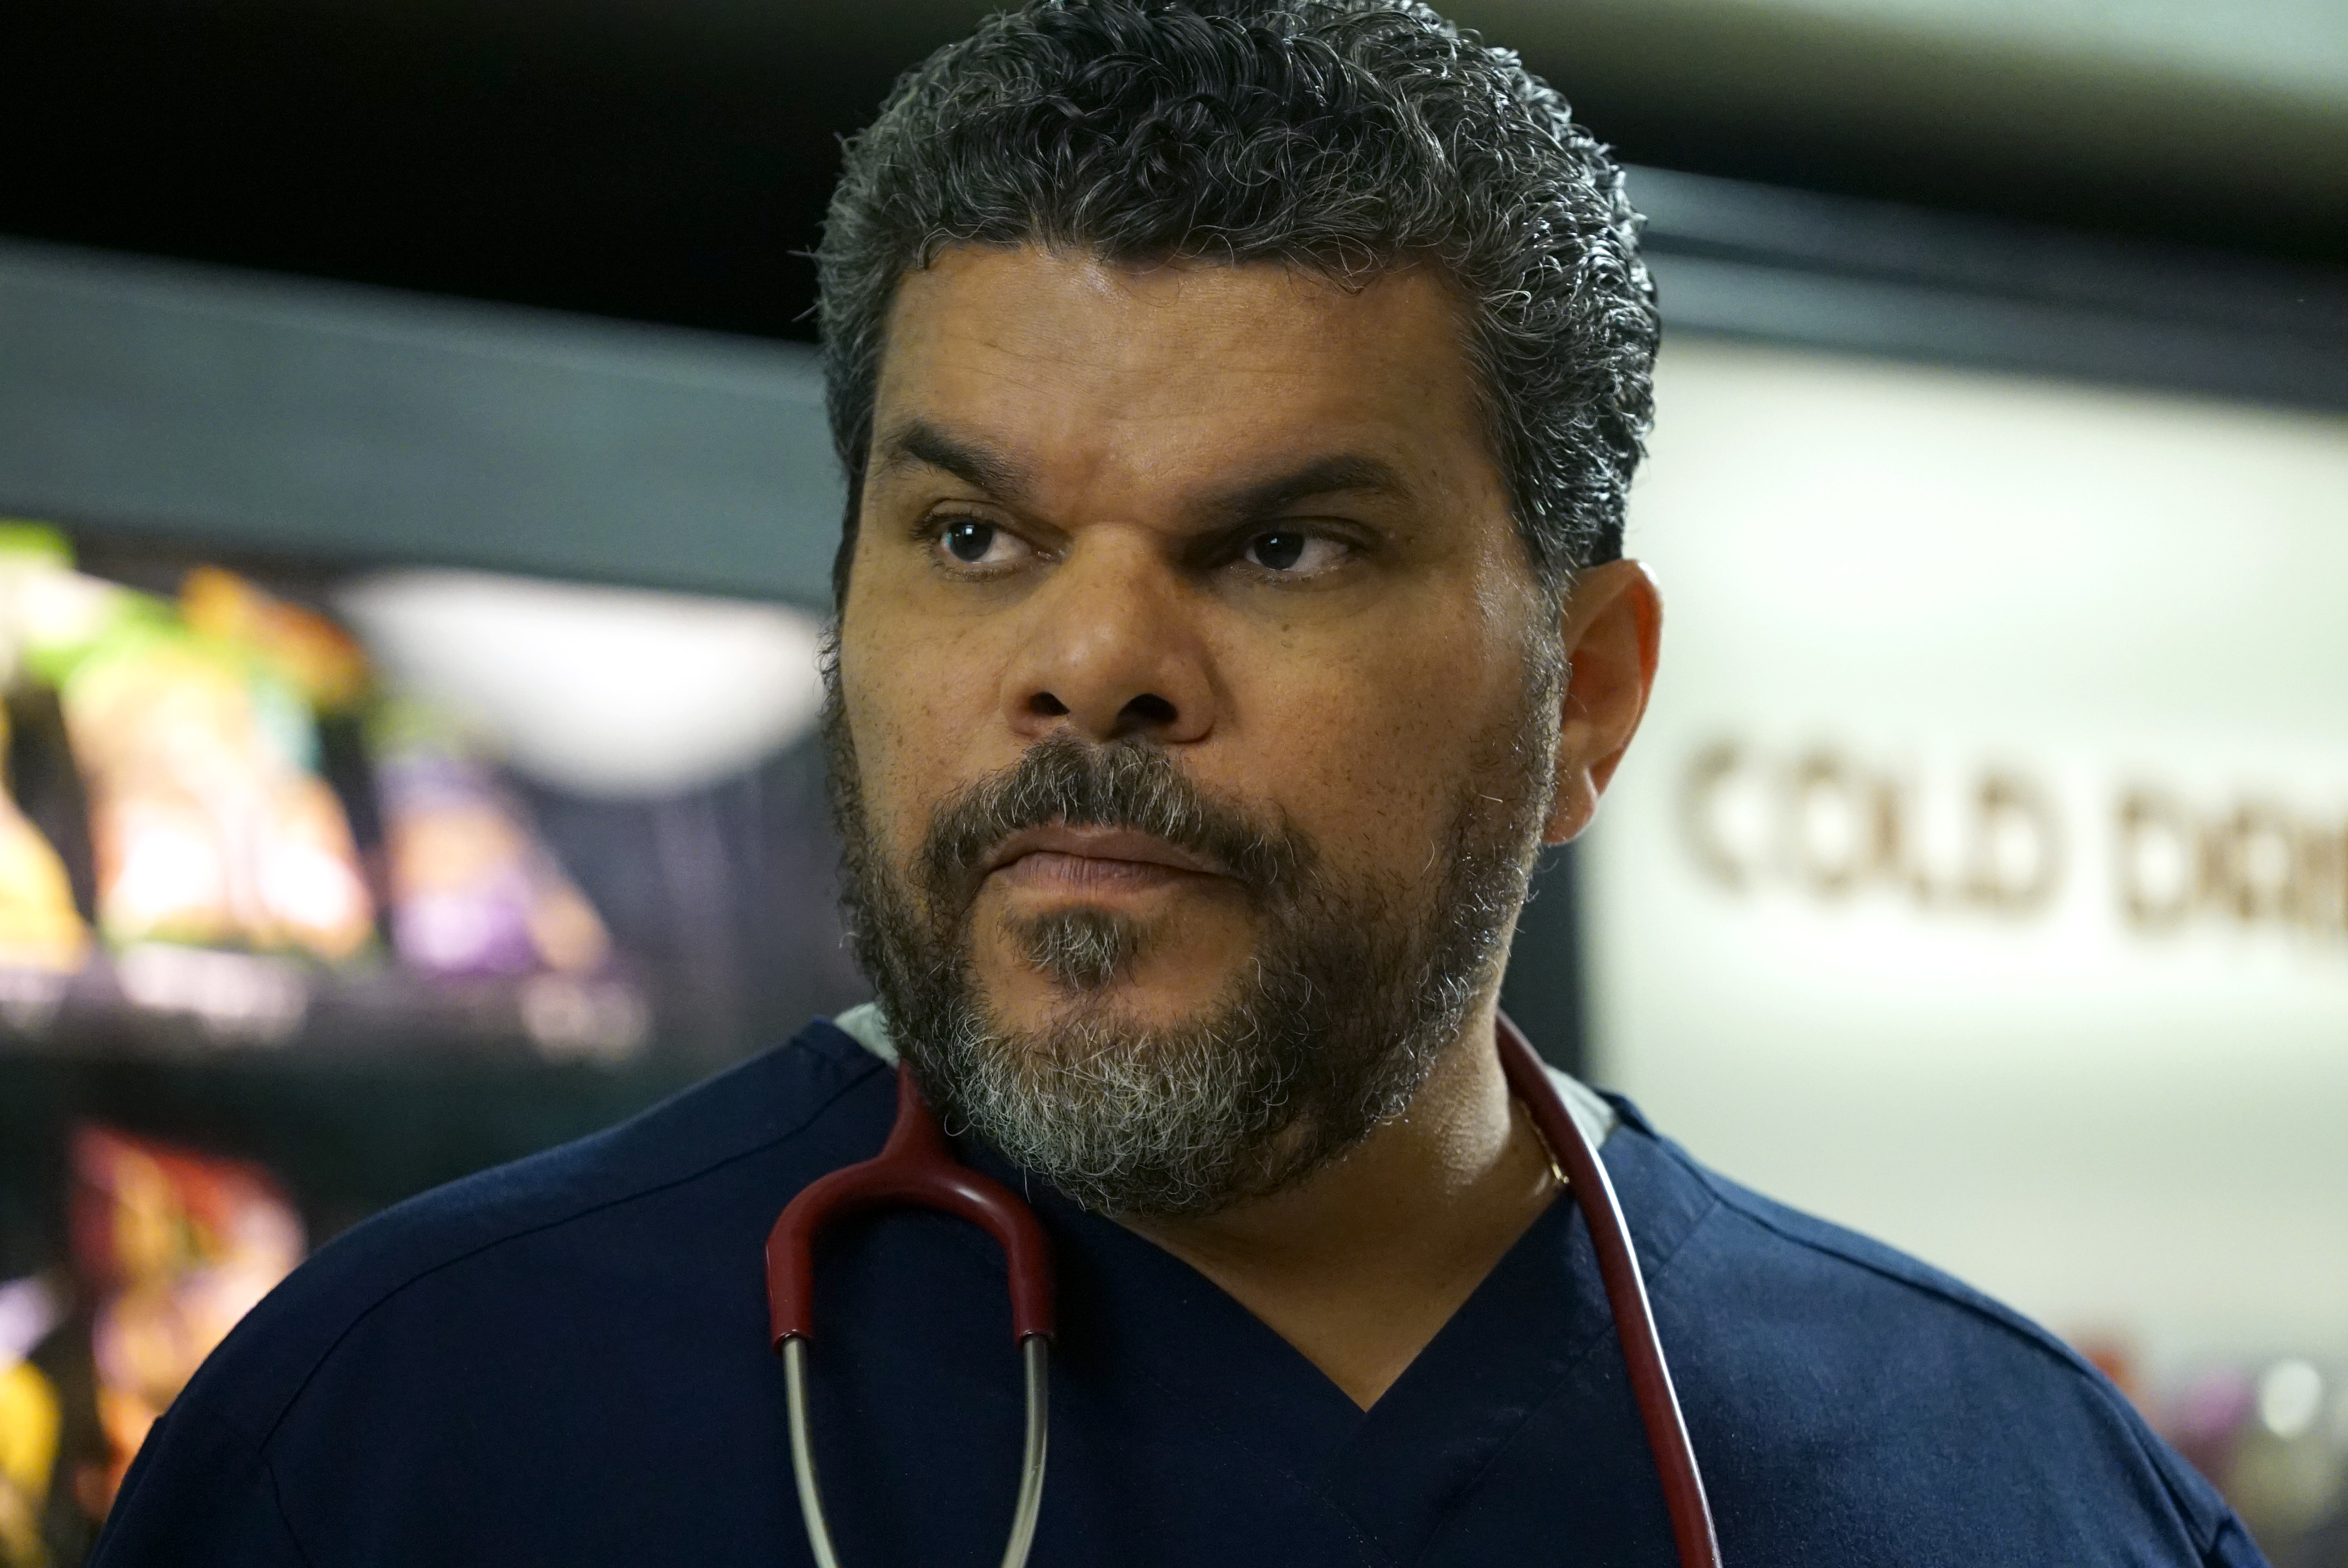 image result for luis guzman narcos characters r us t